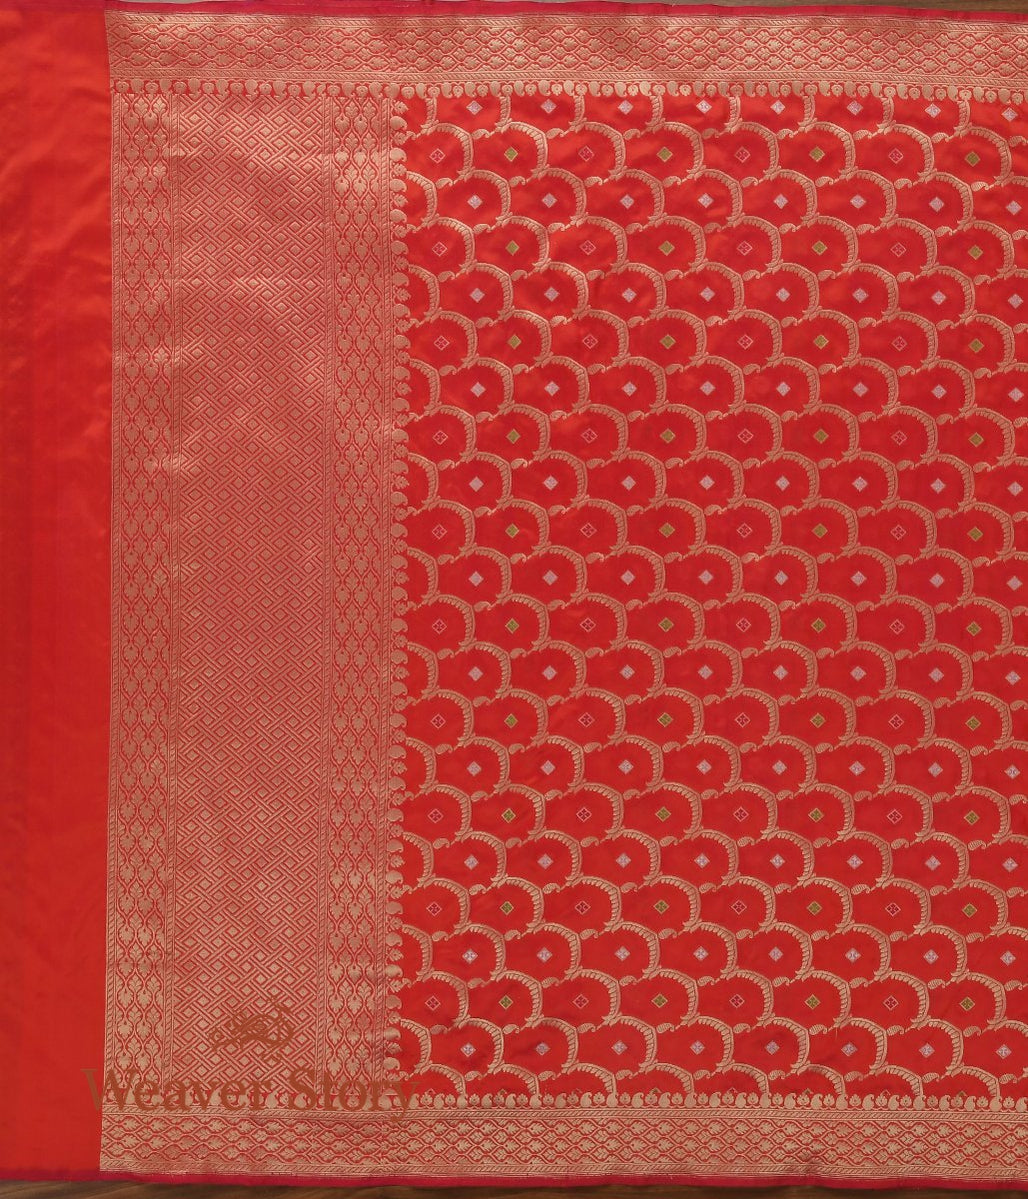 Handwoven Red Cutwork Jangla Dupatta